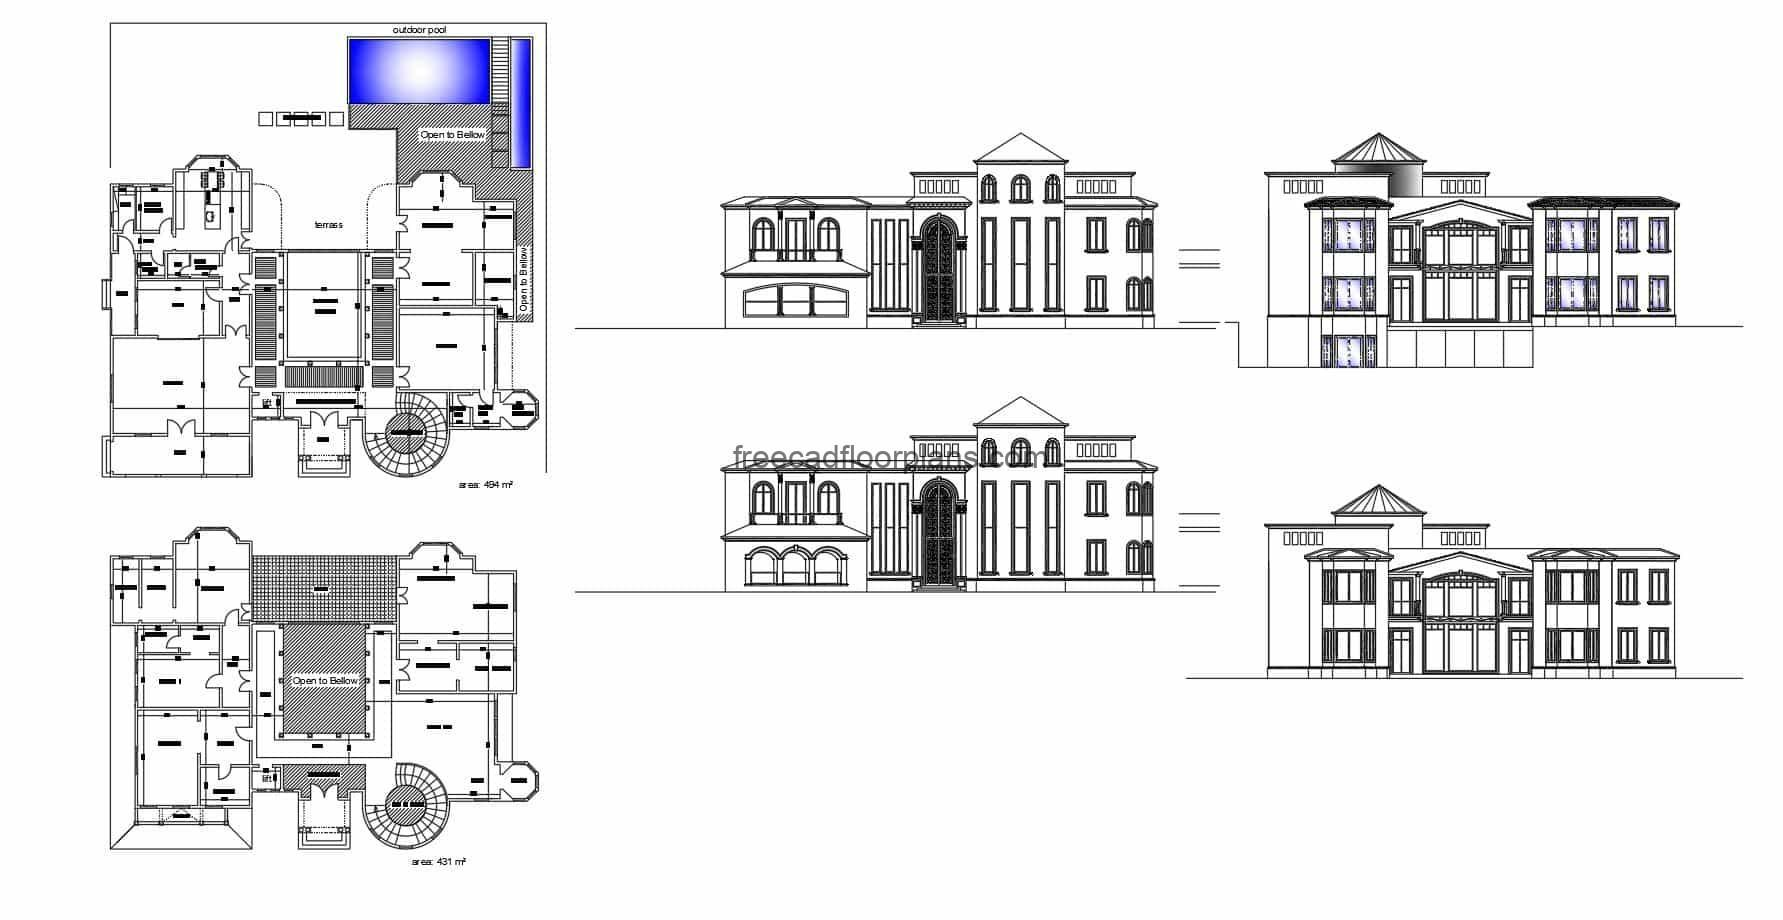 Architectural and dimensional plans of a large villa, in Autocad DWG format, two-level villa with elevations and sections, with four rooms on the second level and a circular staircase. CAD 2D DWG plans for free download in AutoCAD format